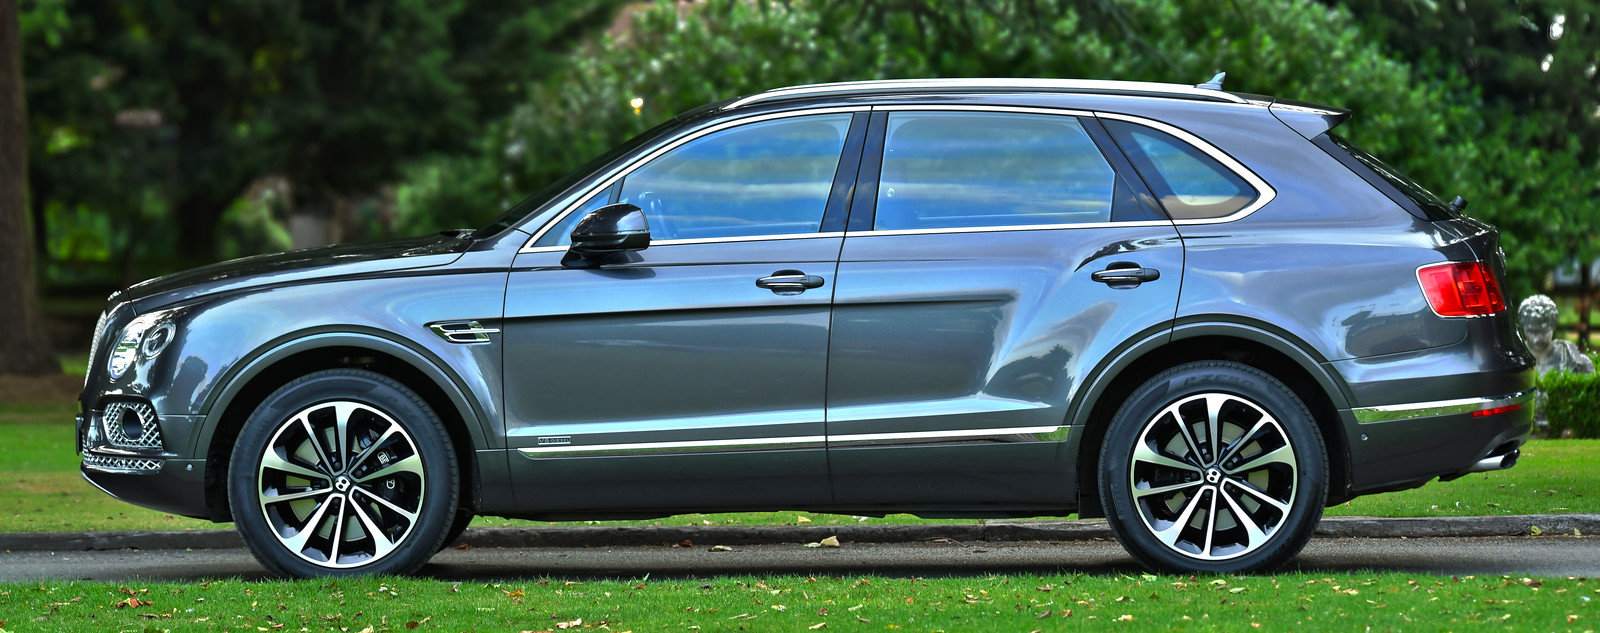 2017 Bentley Bentayga 4.0 Twin Turbo V8 Diesel 4x4 For Sale (picture 2 of 6)